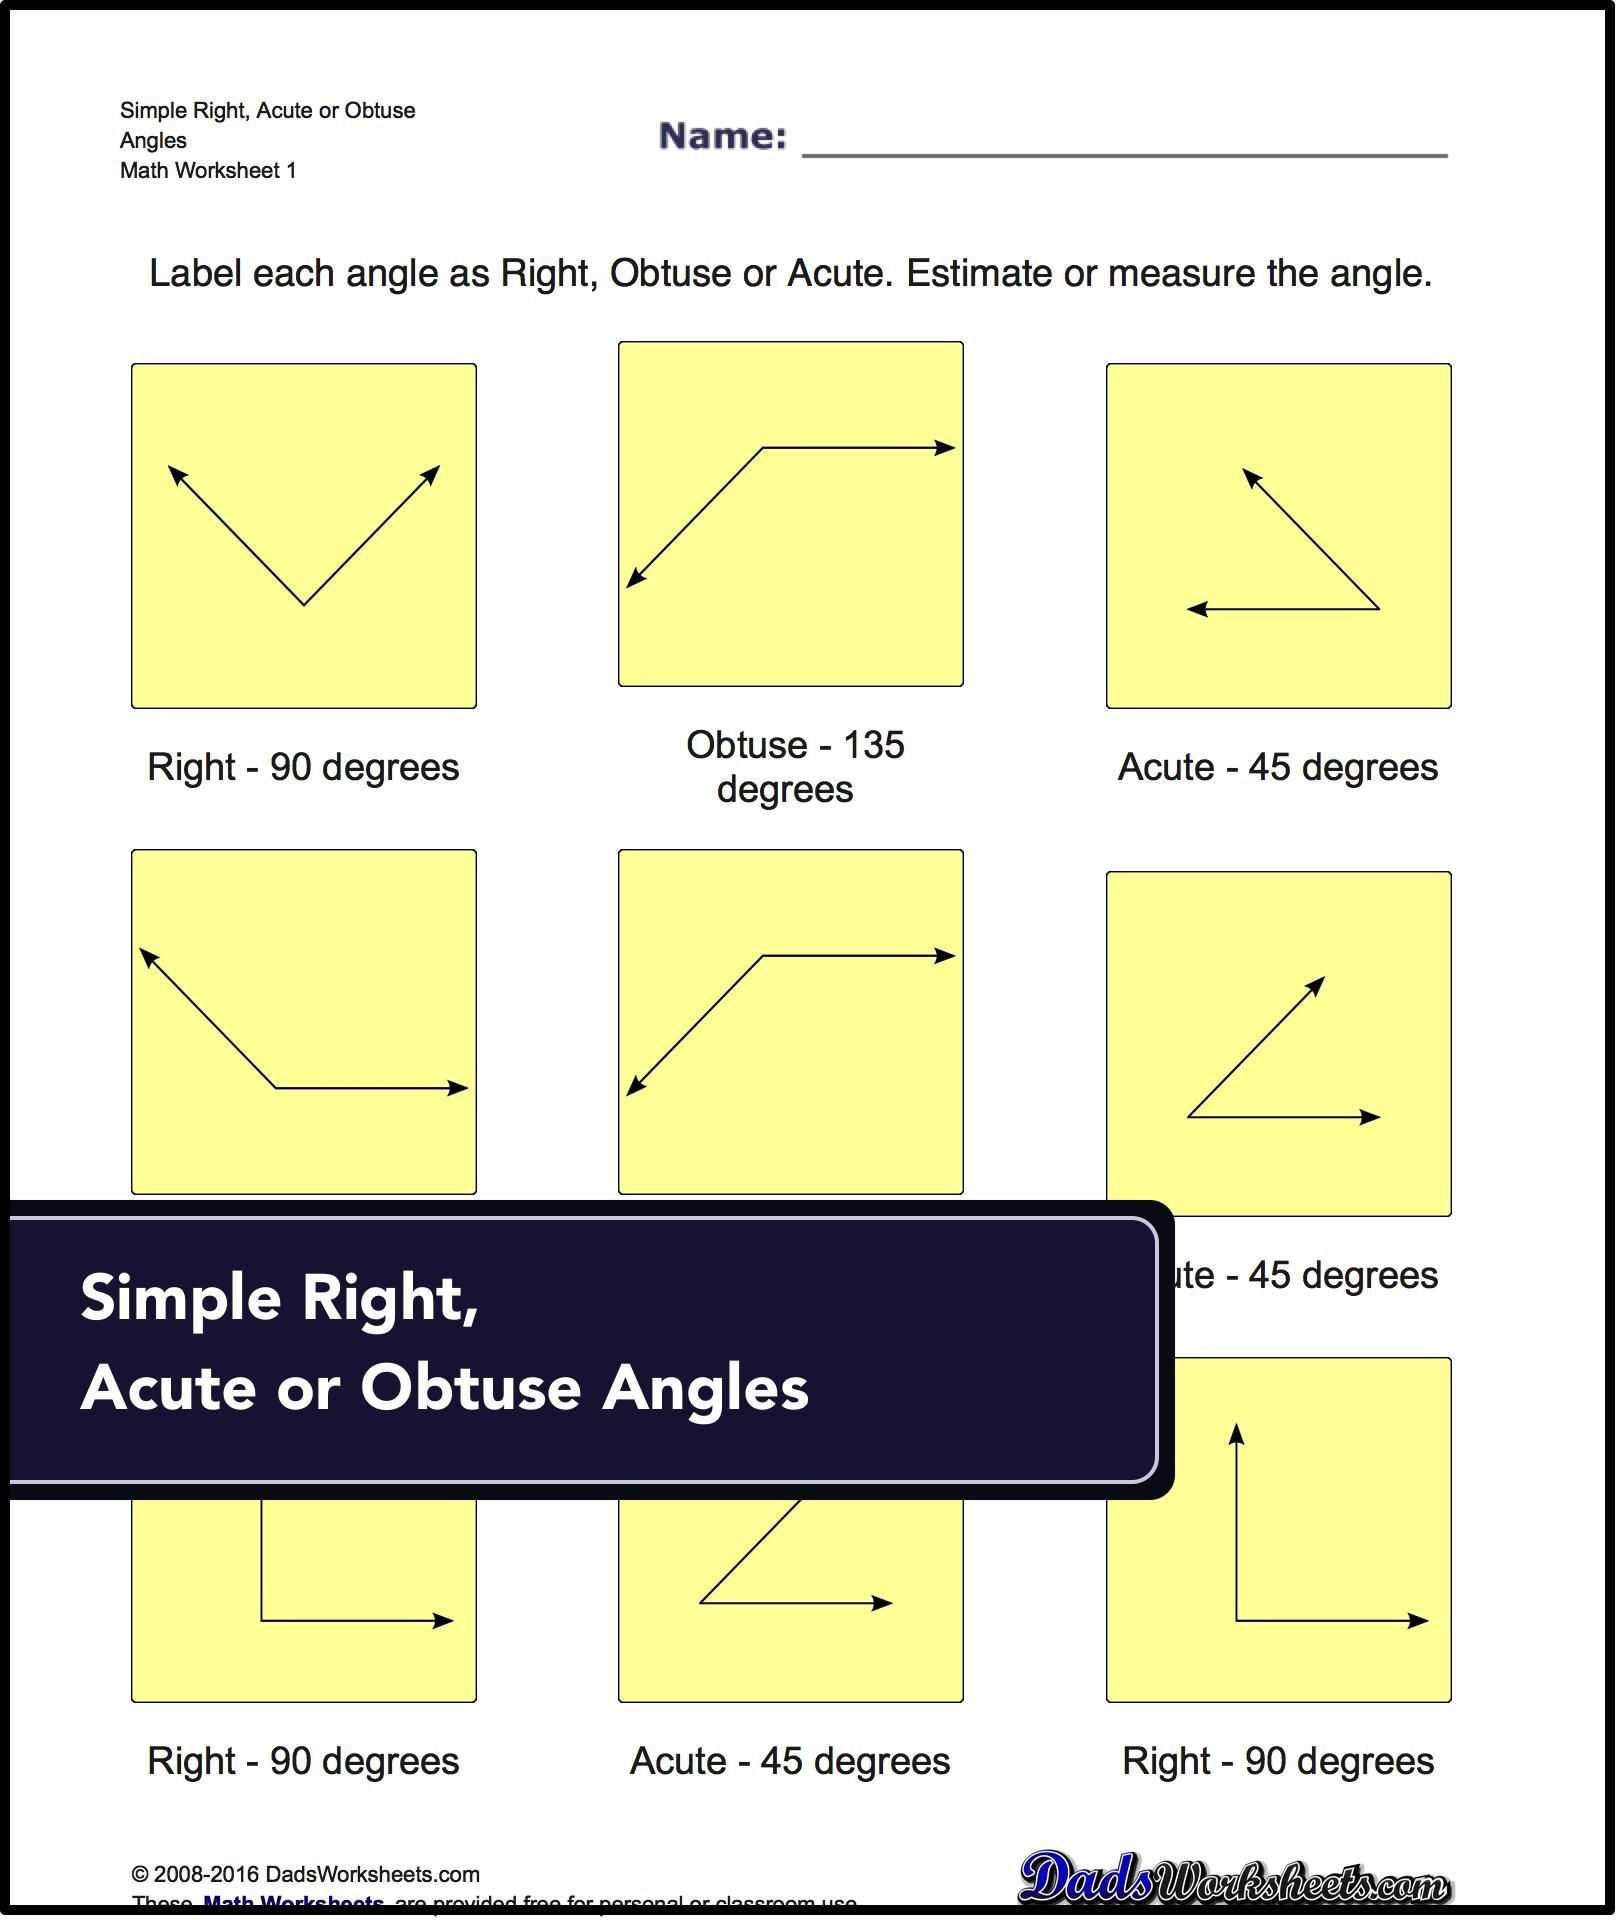 Basic Geometry Worksheets Topics Covered Angular Measurement Complementary And Suplementary